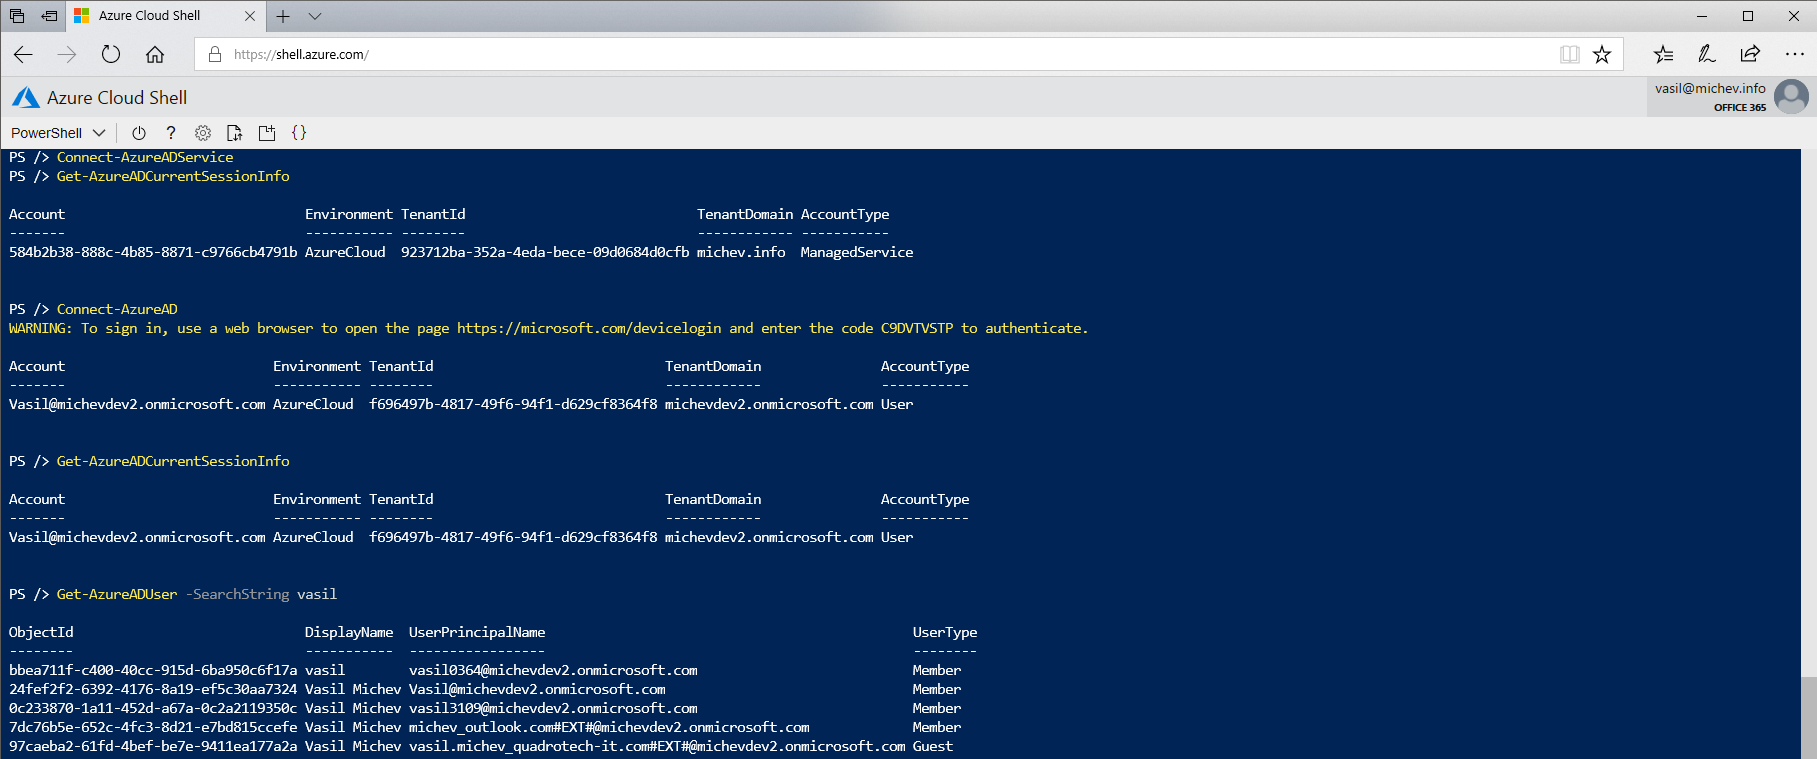 Another example of Azure Cloud Shell